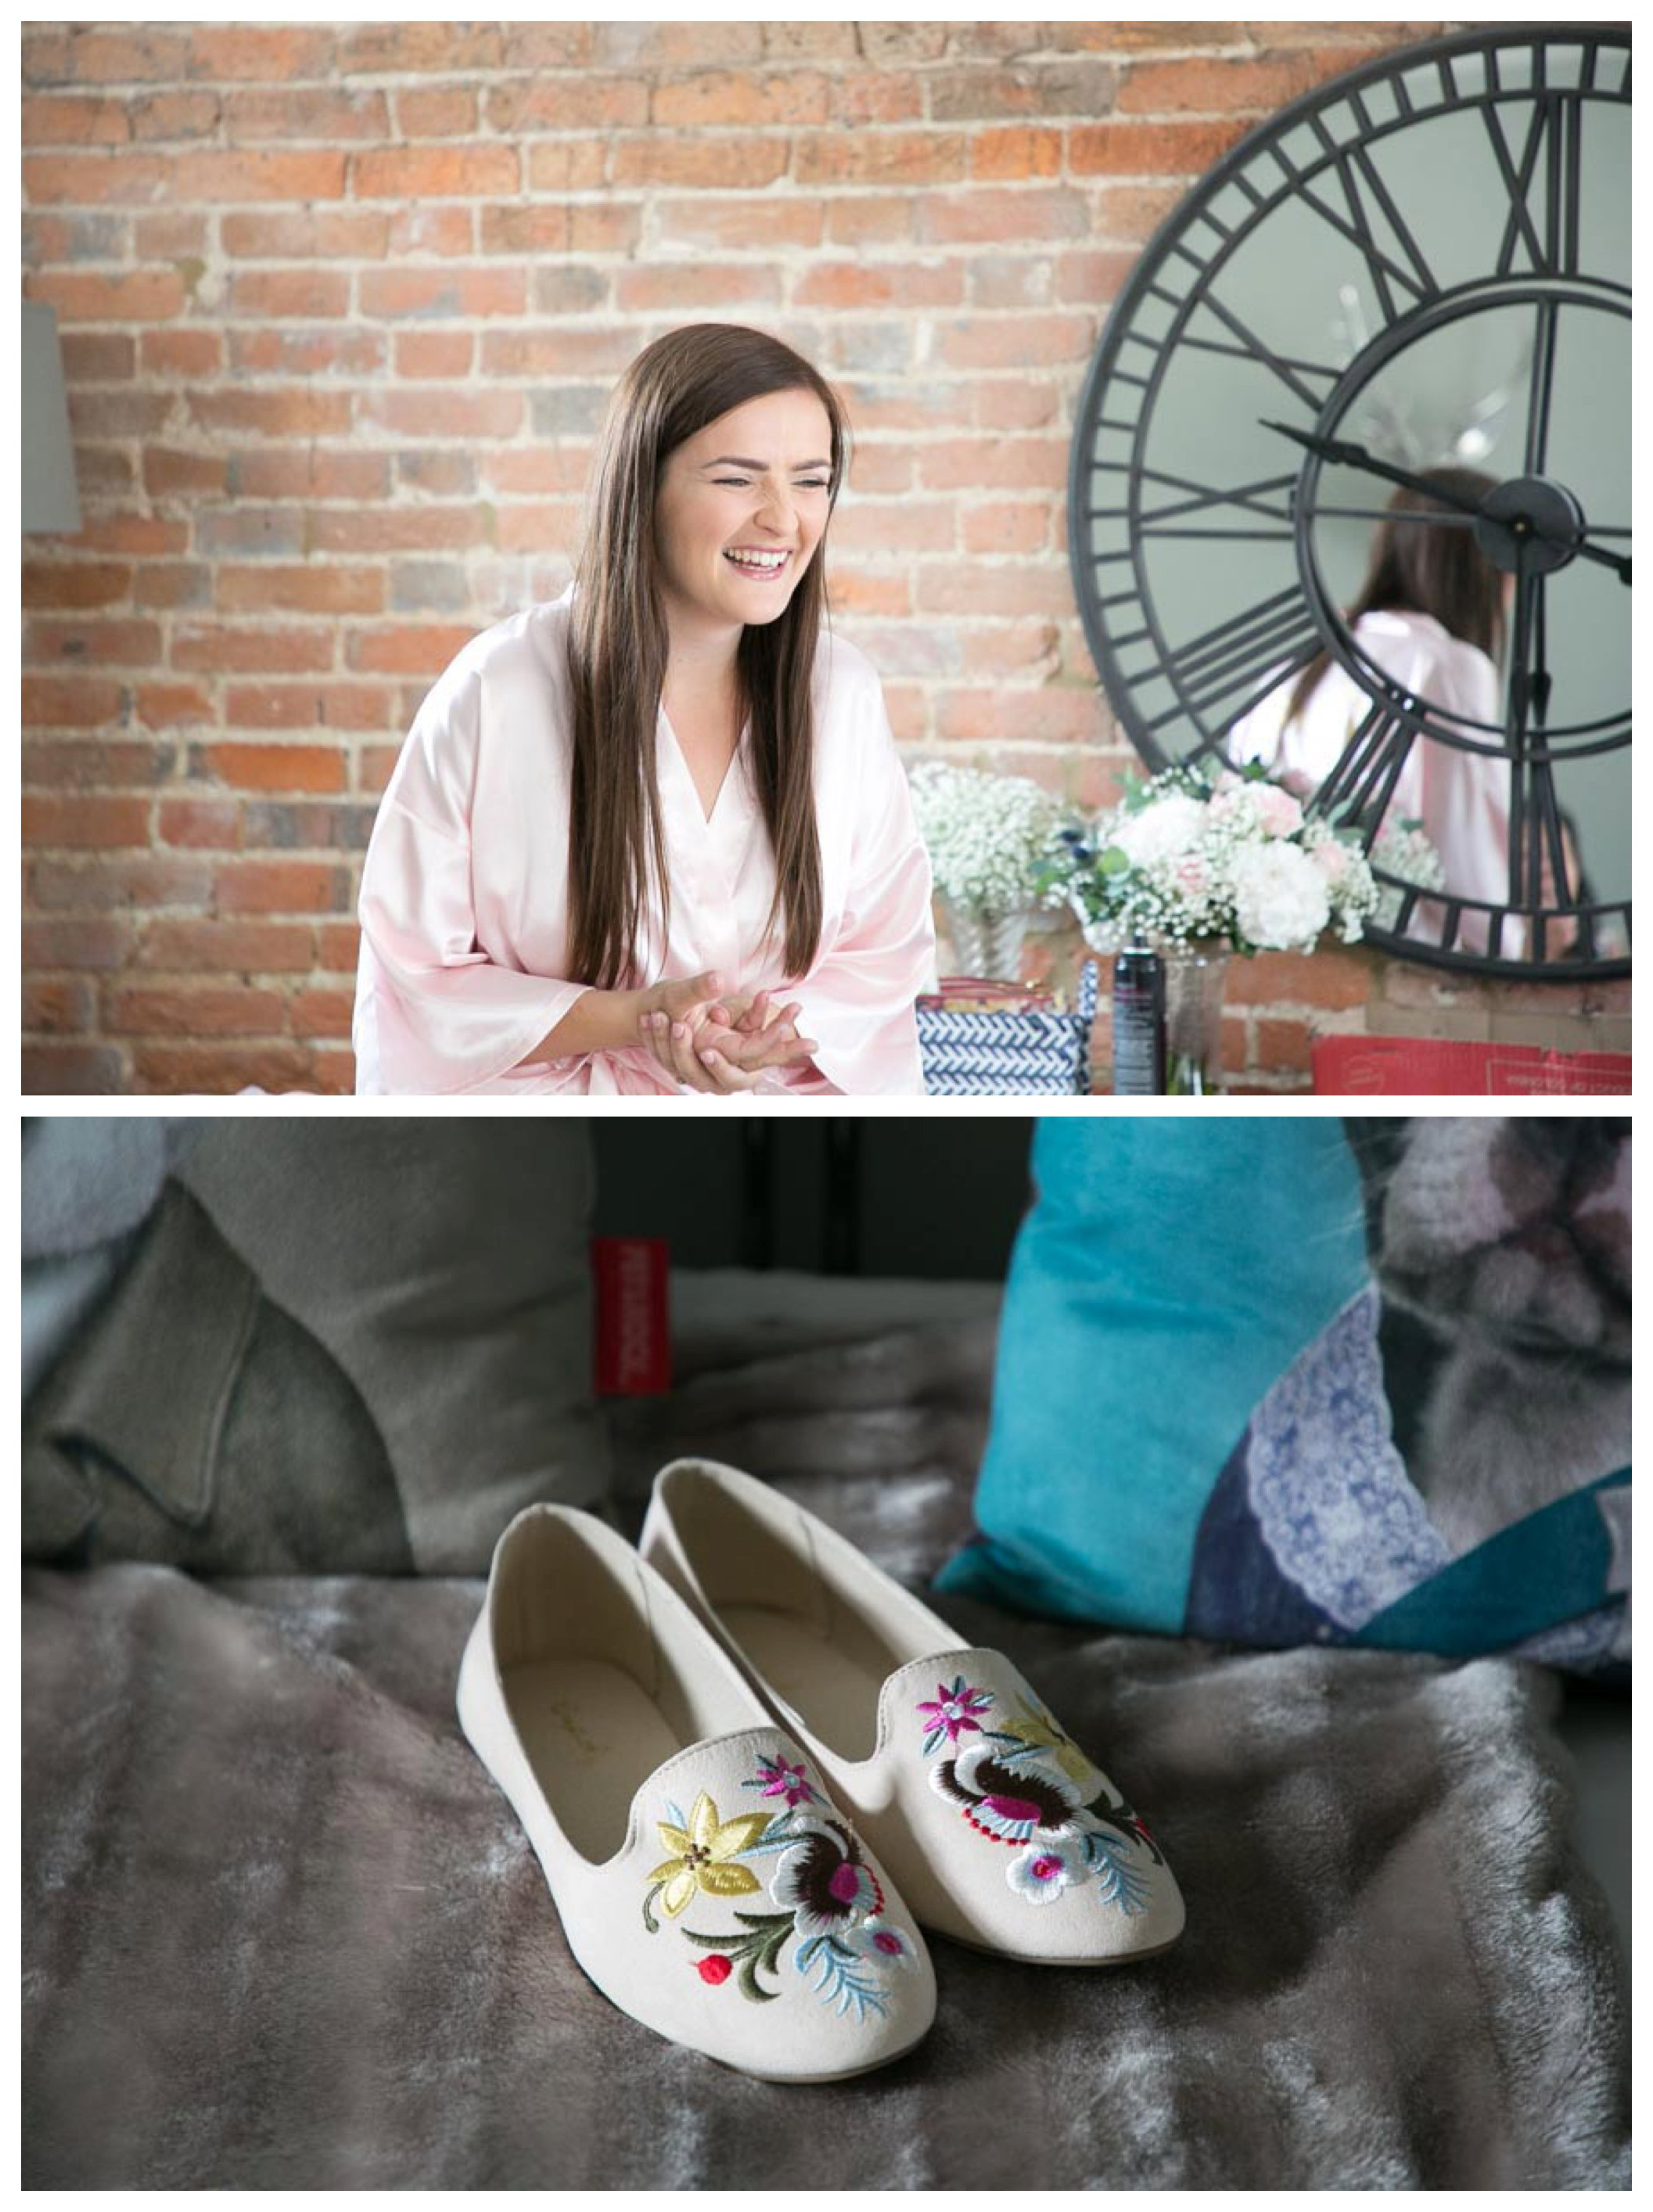 laughing bride and fun embroidered shoes